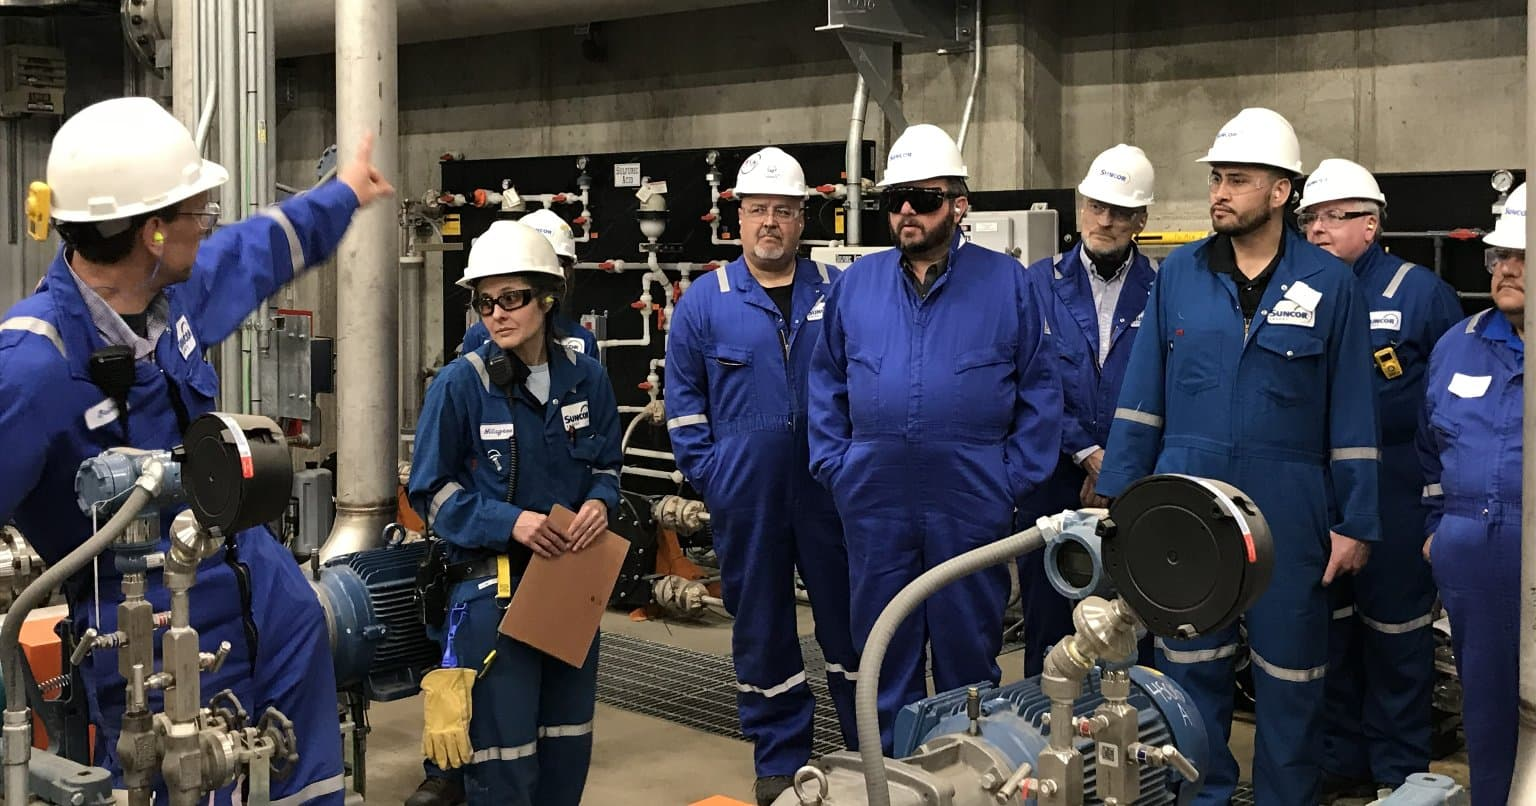 Commerce City refinery hosted Adams County and Commerce City government leaders for a tour of our facility